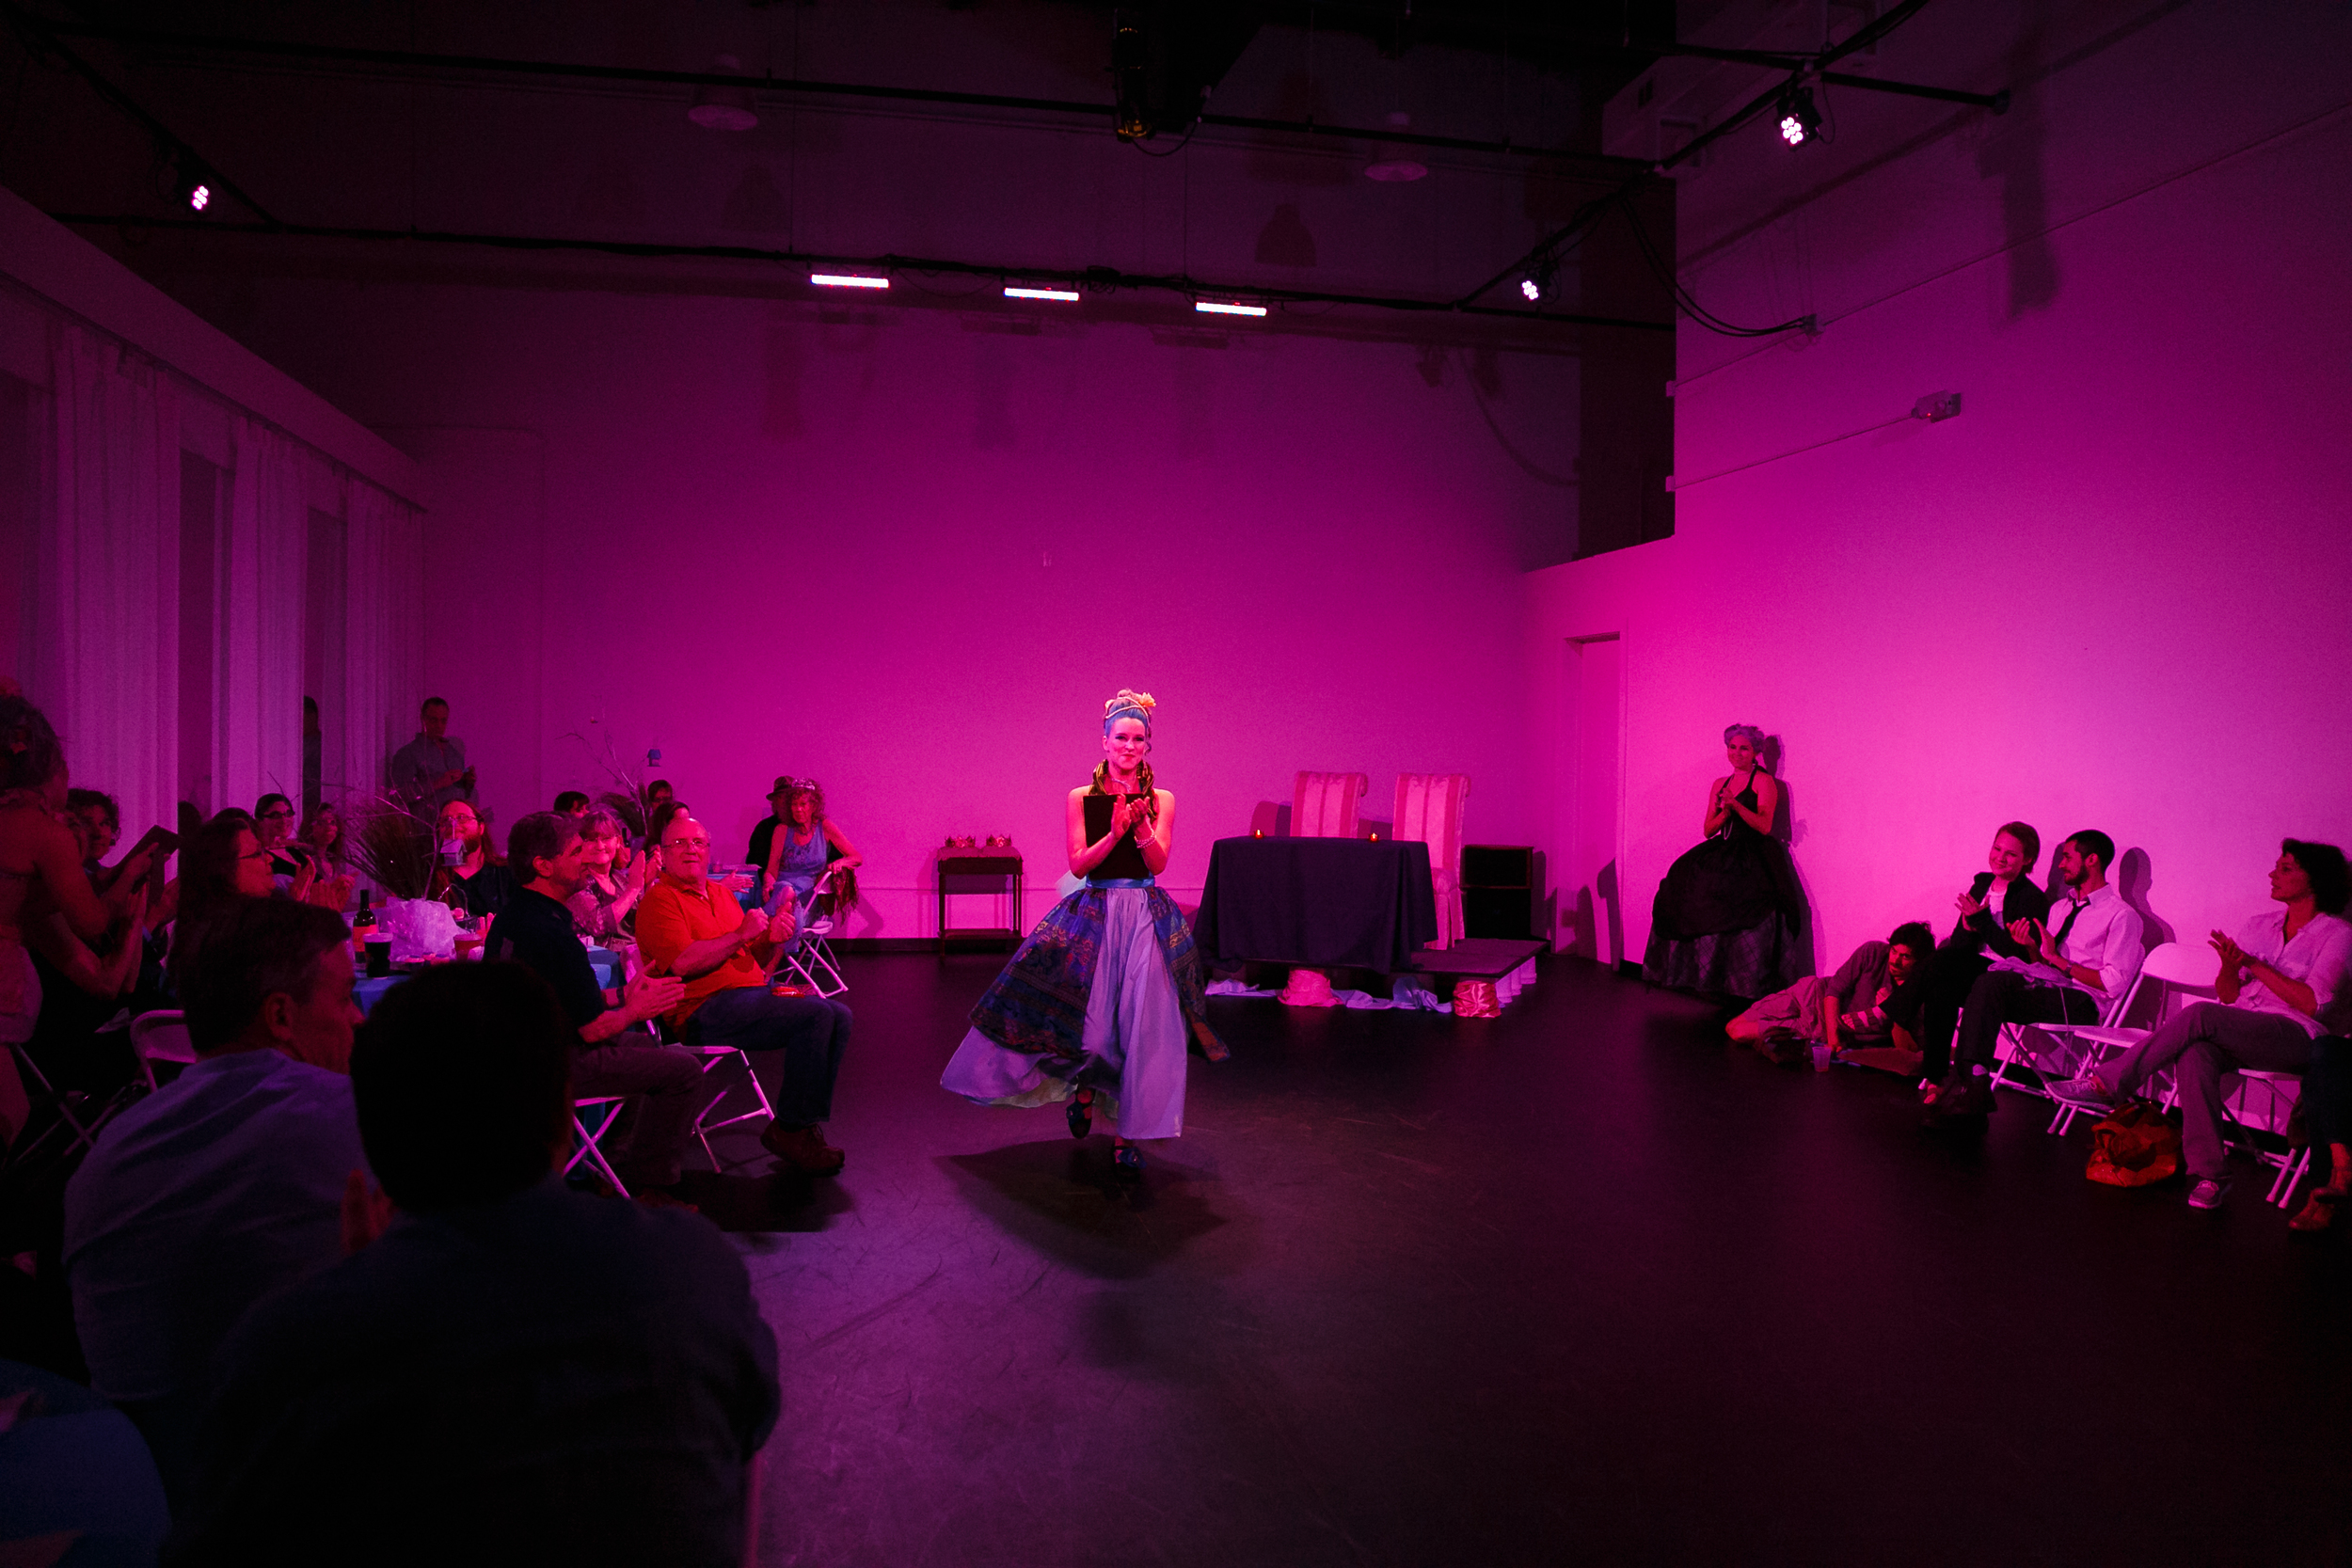 Indoor performance of immersive dance theater in Austin TX